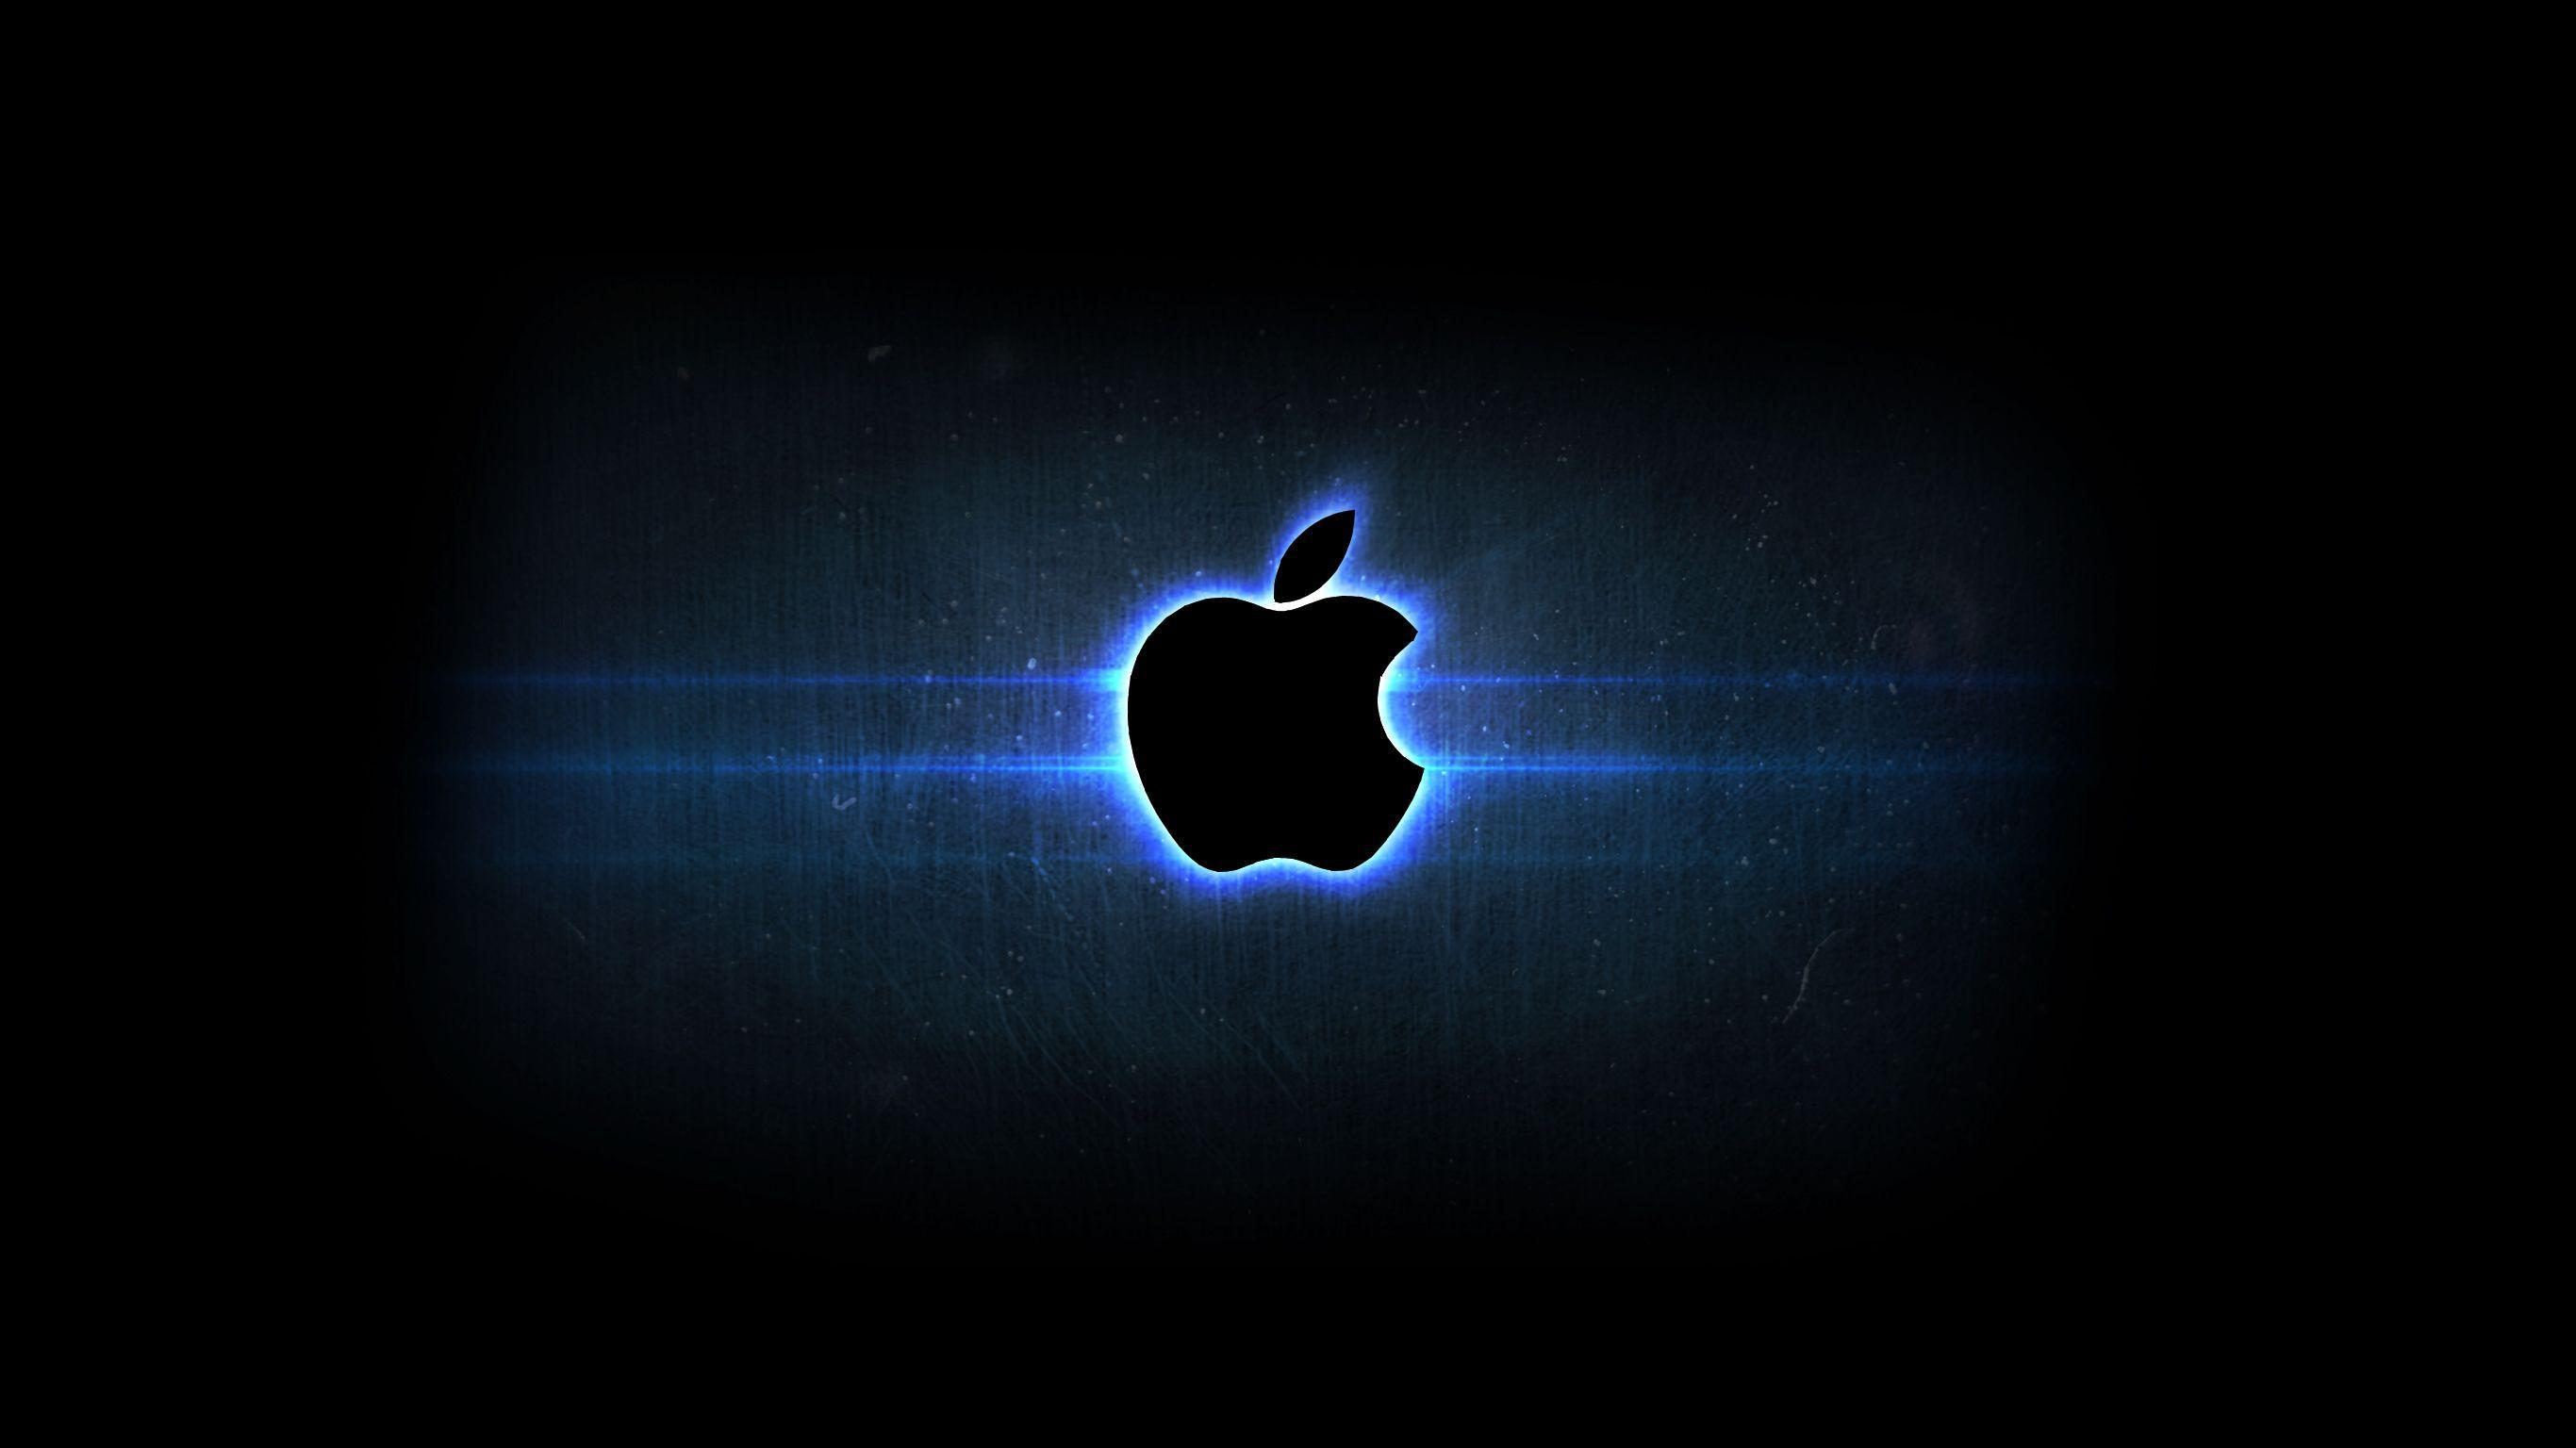 Apple Background Best Hd Wallpaper Only Hd Wallpapers